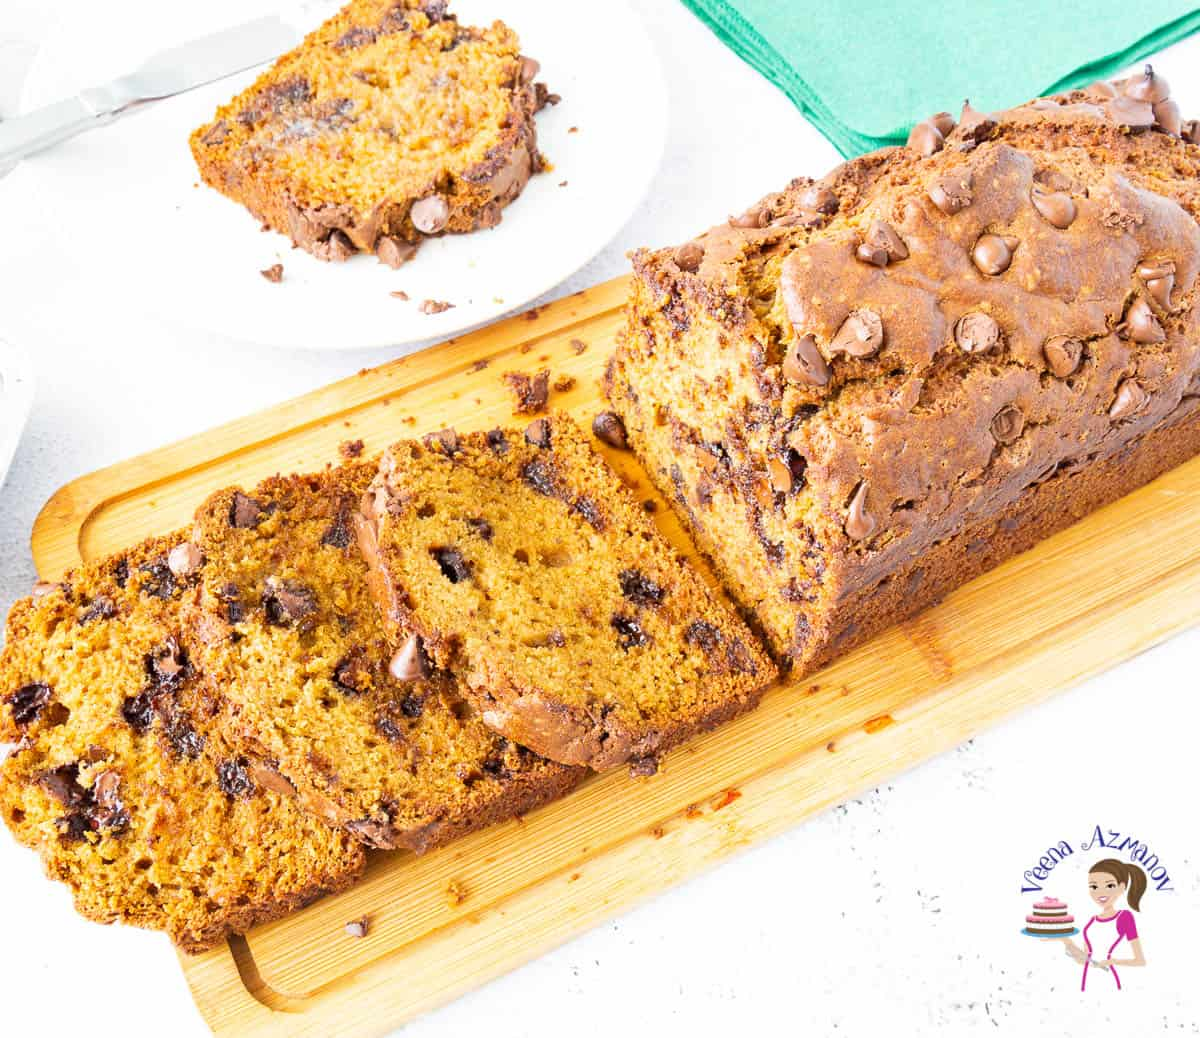 sliced chocolate chip pumpkin bread on a wooden board